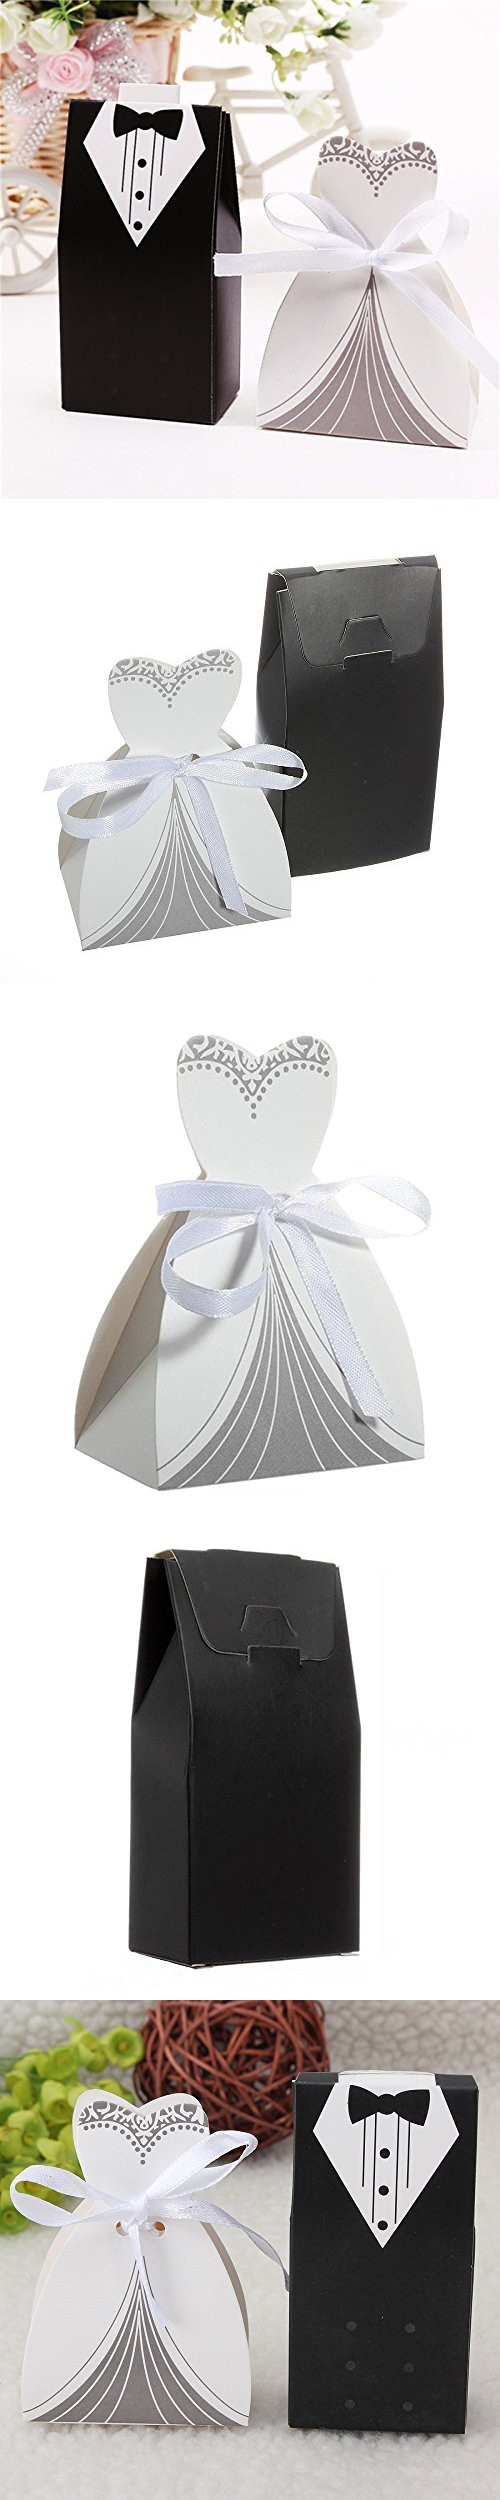 IGBBLOVE 100Pcs Wedding Favor Candy Box Bride & Groom Dress Tuxedo ...